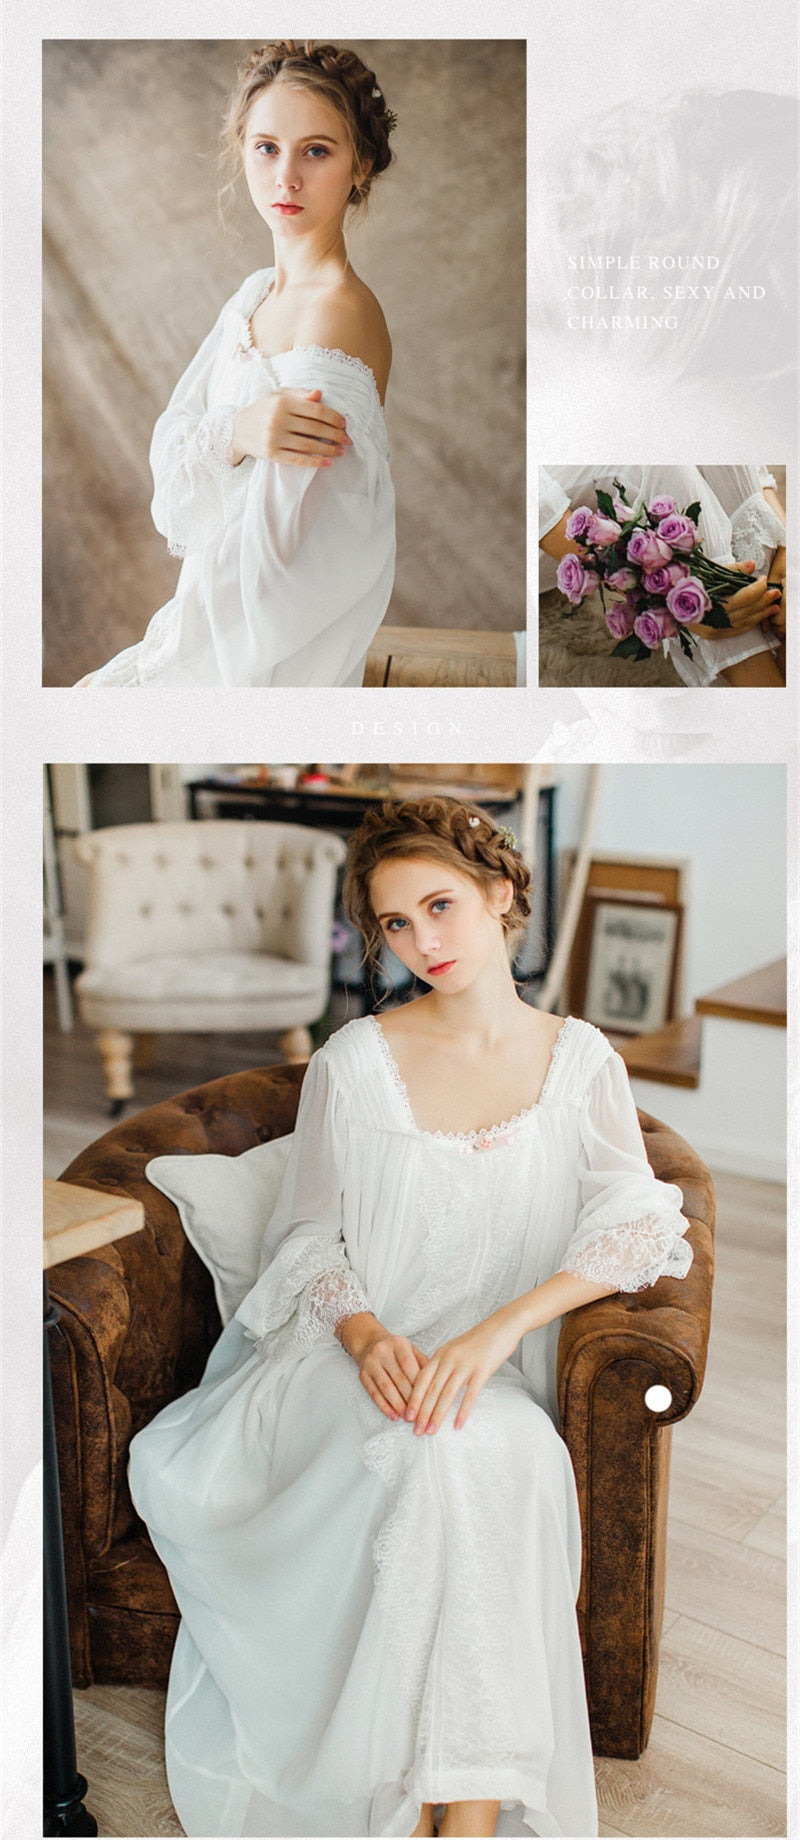 d68112bd21109 Healthy Home Dress Nightgown Women Plus Size Long White Cotton Sleepwear  Flare Sleeve Casual Night Dress